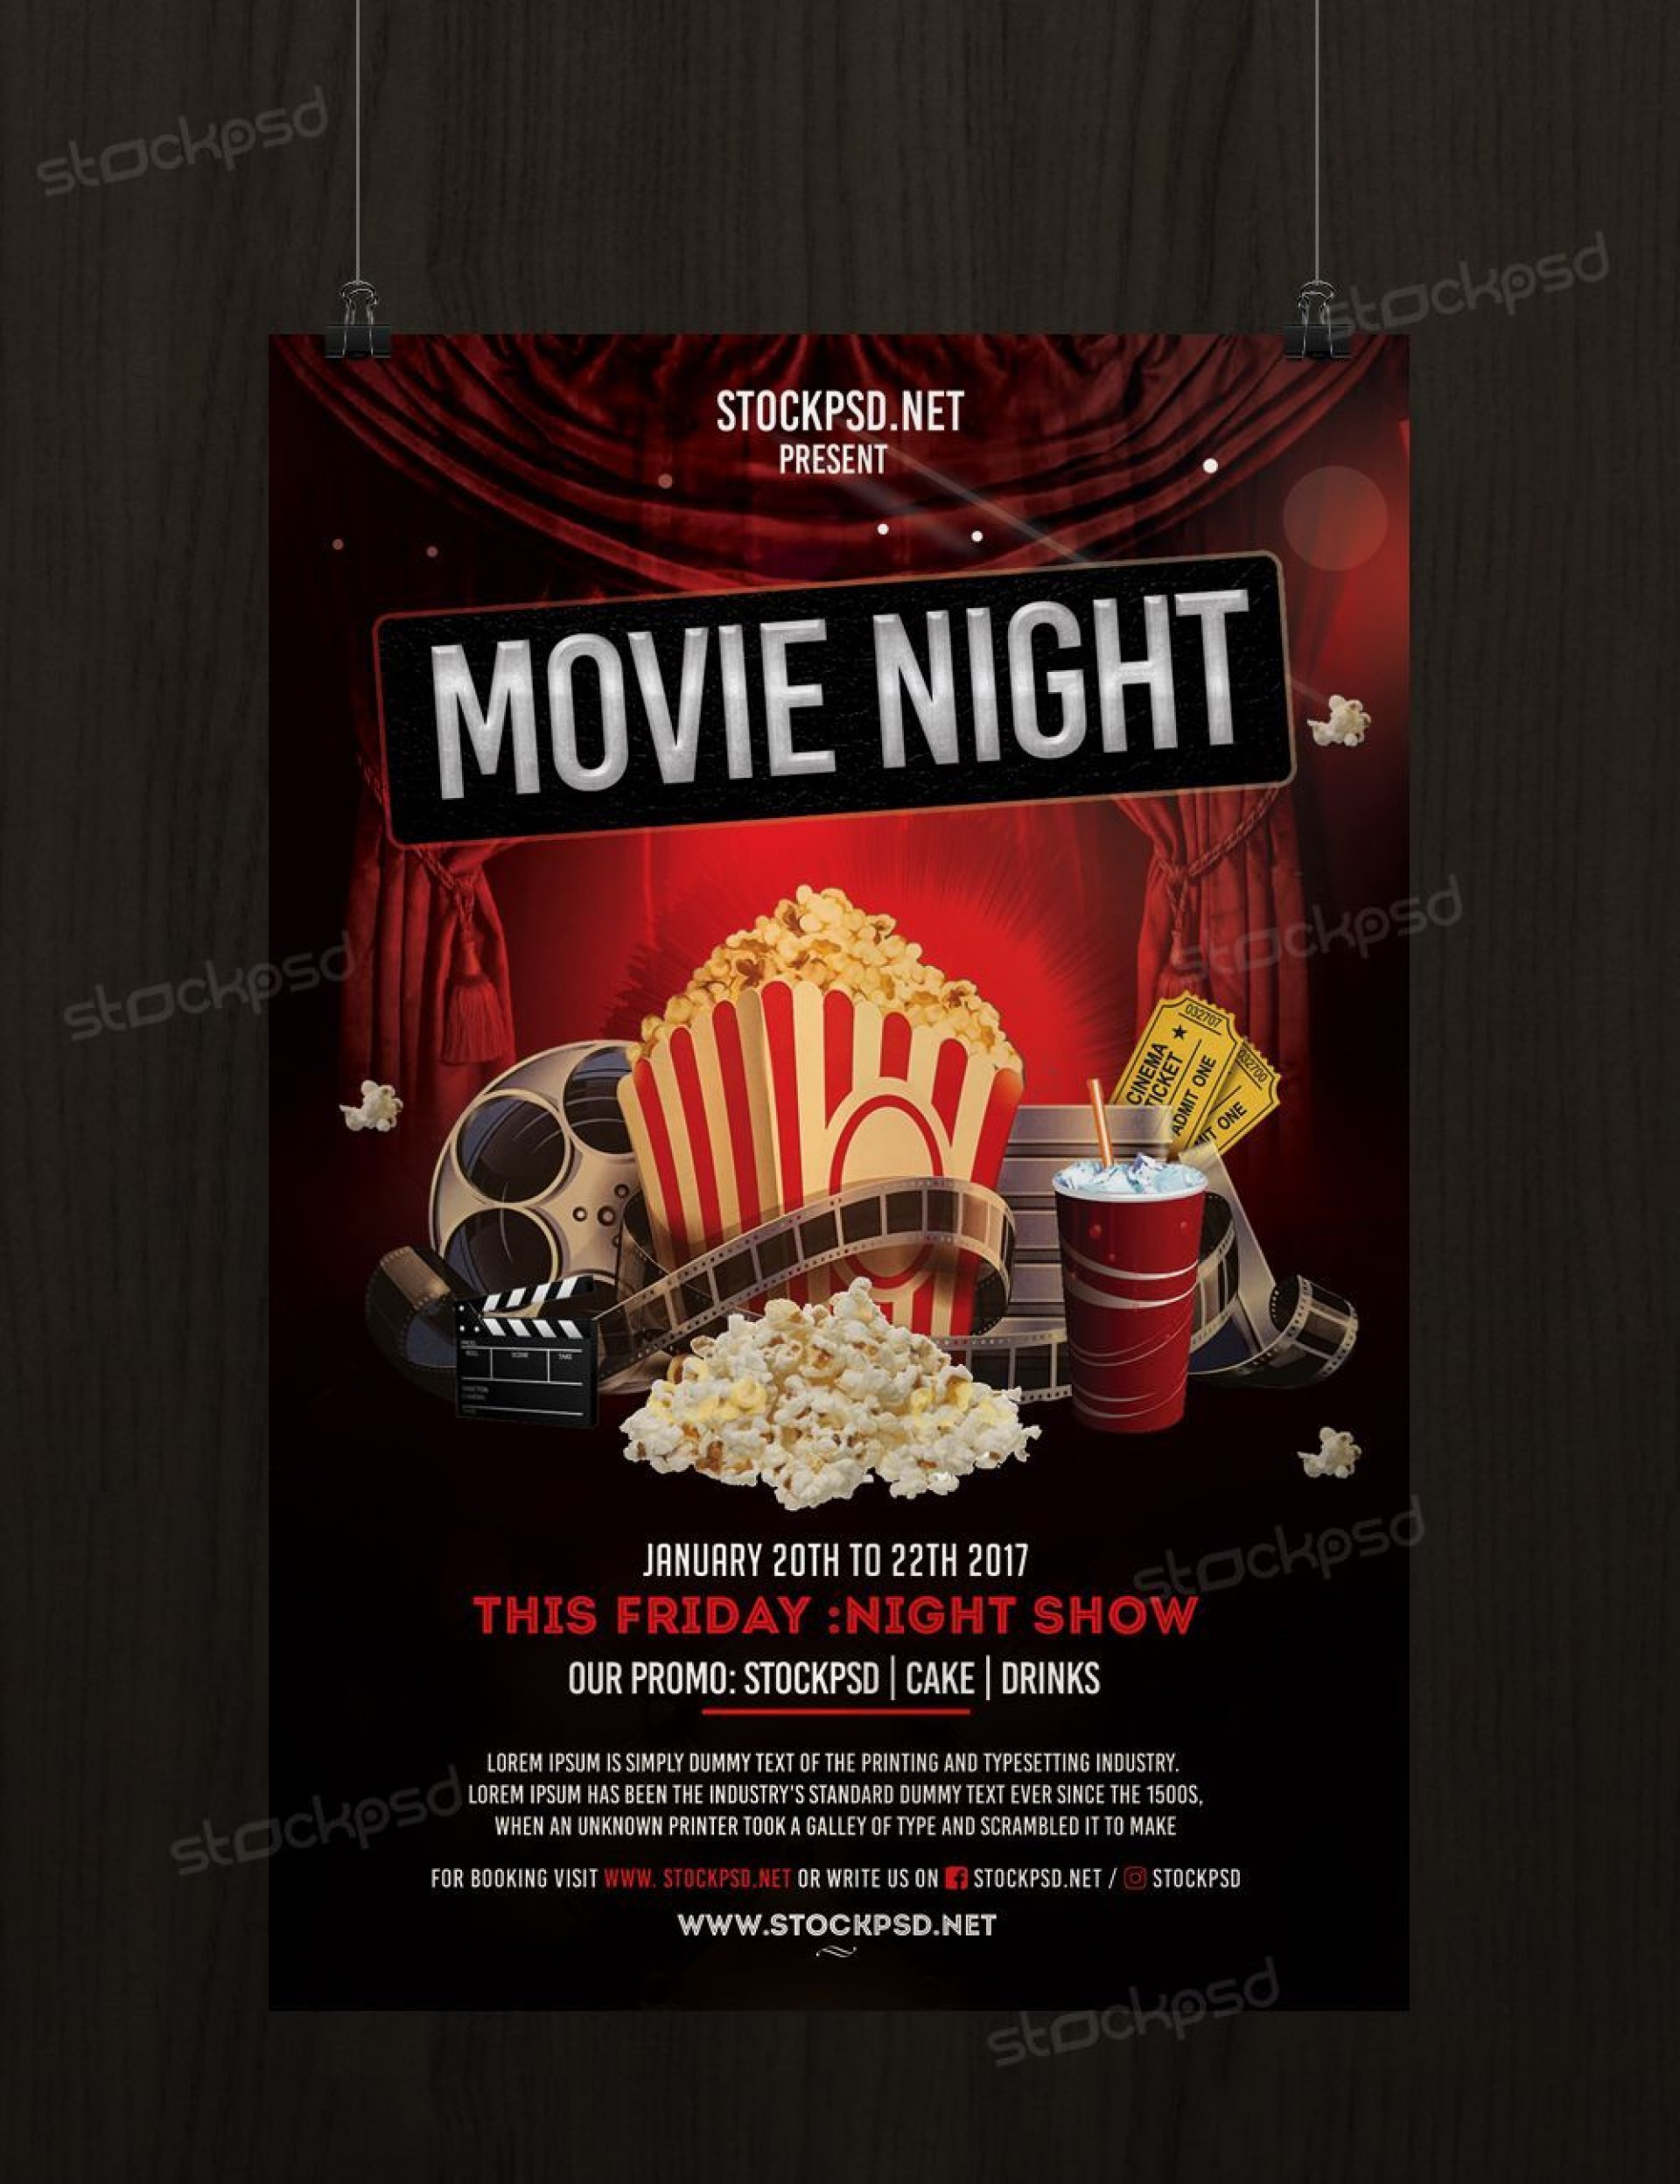 006 Marvelou Movie Night Flyer Template Highest Clarity  Templates Free Microsoft Word1920